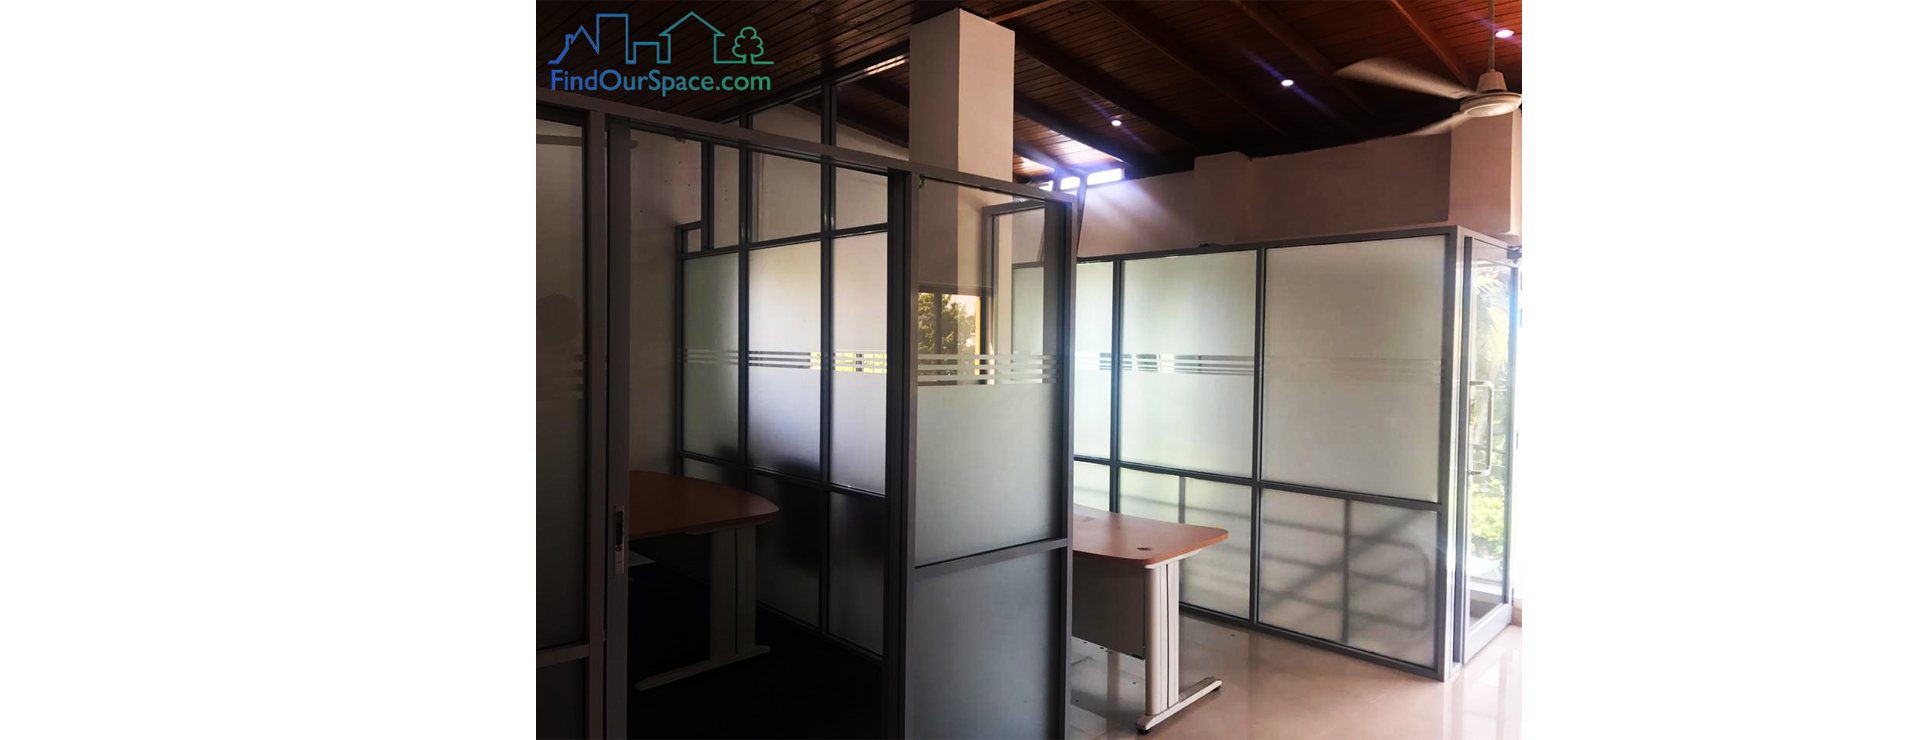 Office Space For Rent In Colombo 6 Findourspace Com